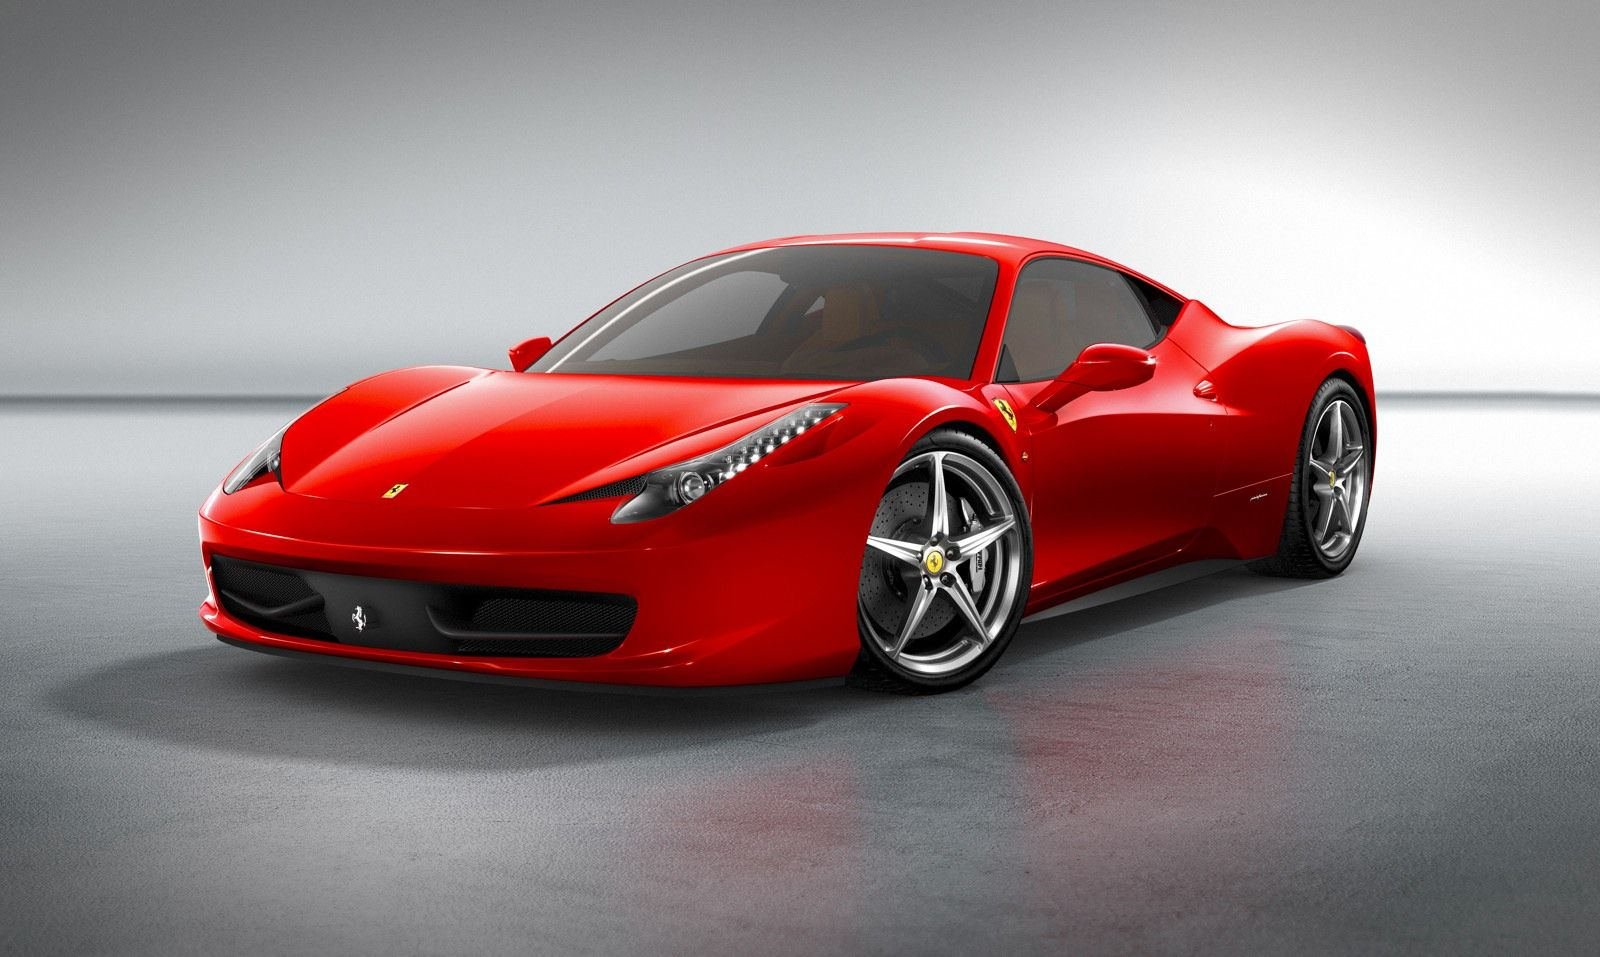 Ferrari 458 Italia, this car would be my milestone being successful car. Soo attractive and sexy!